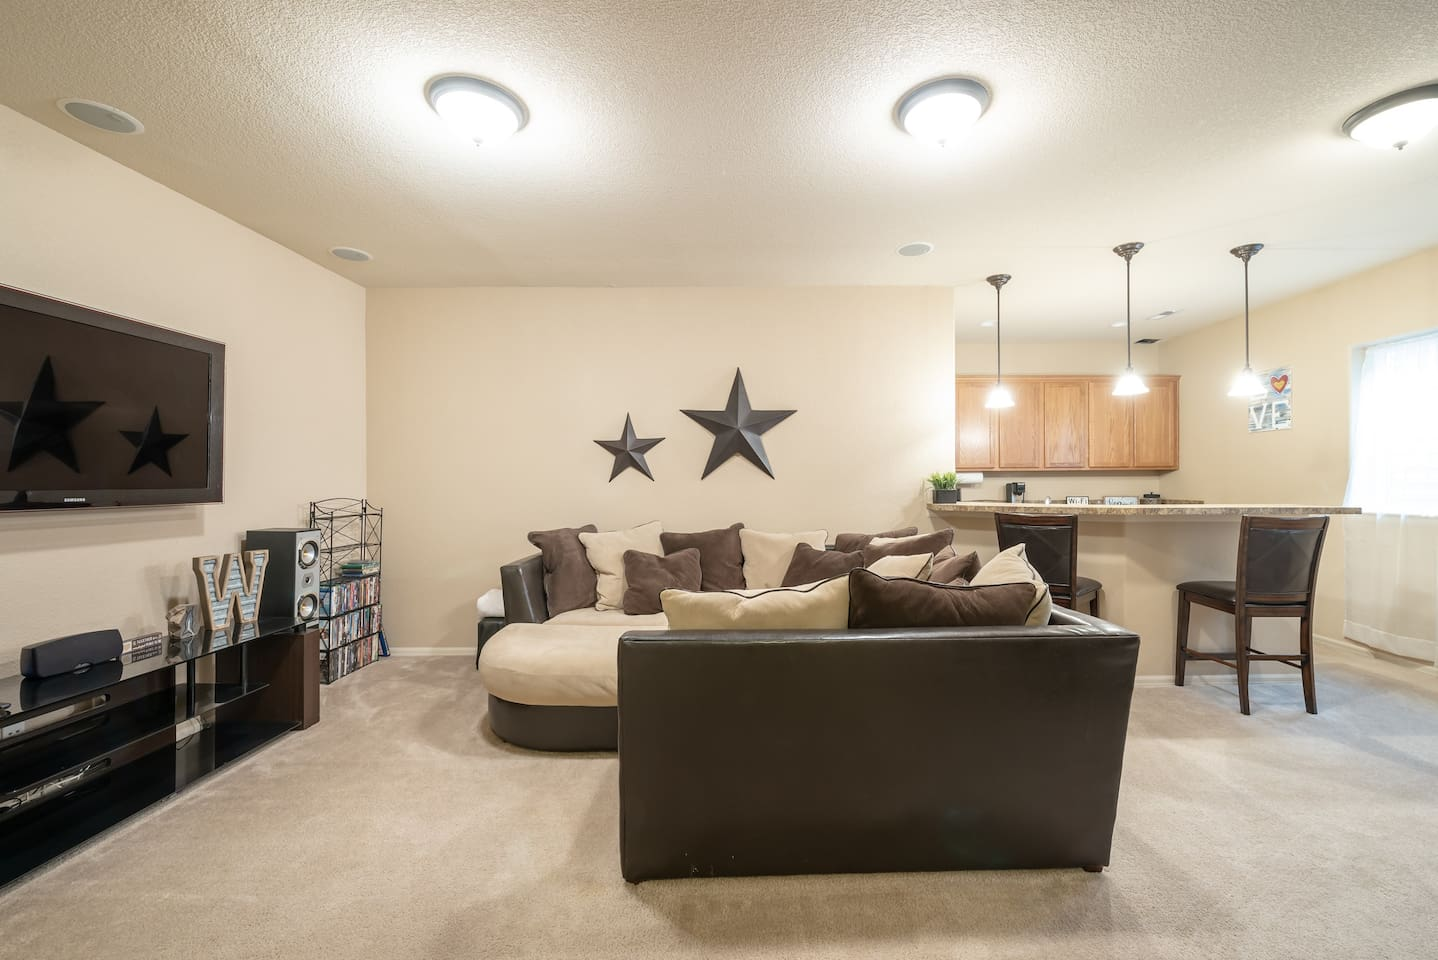 living room and kitchen, small dining room area . Your entire private space